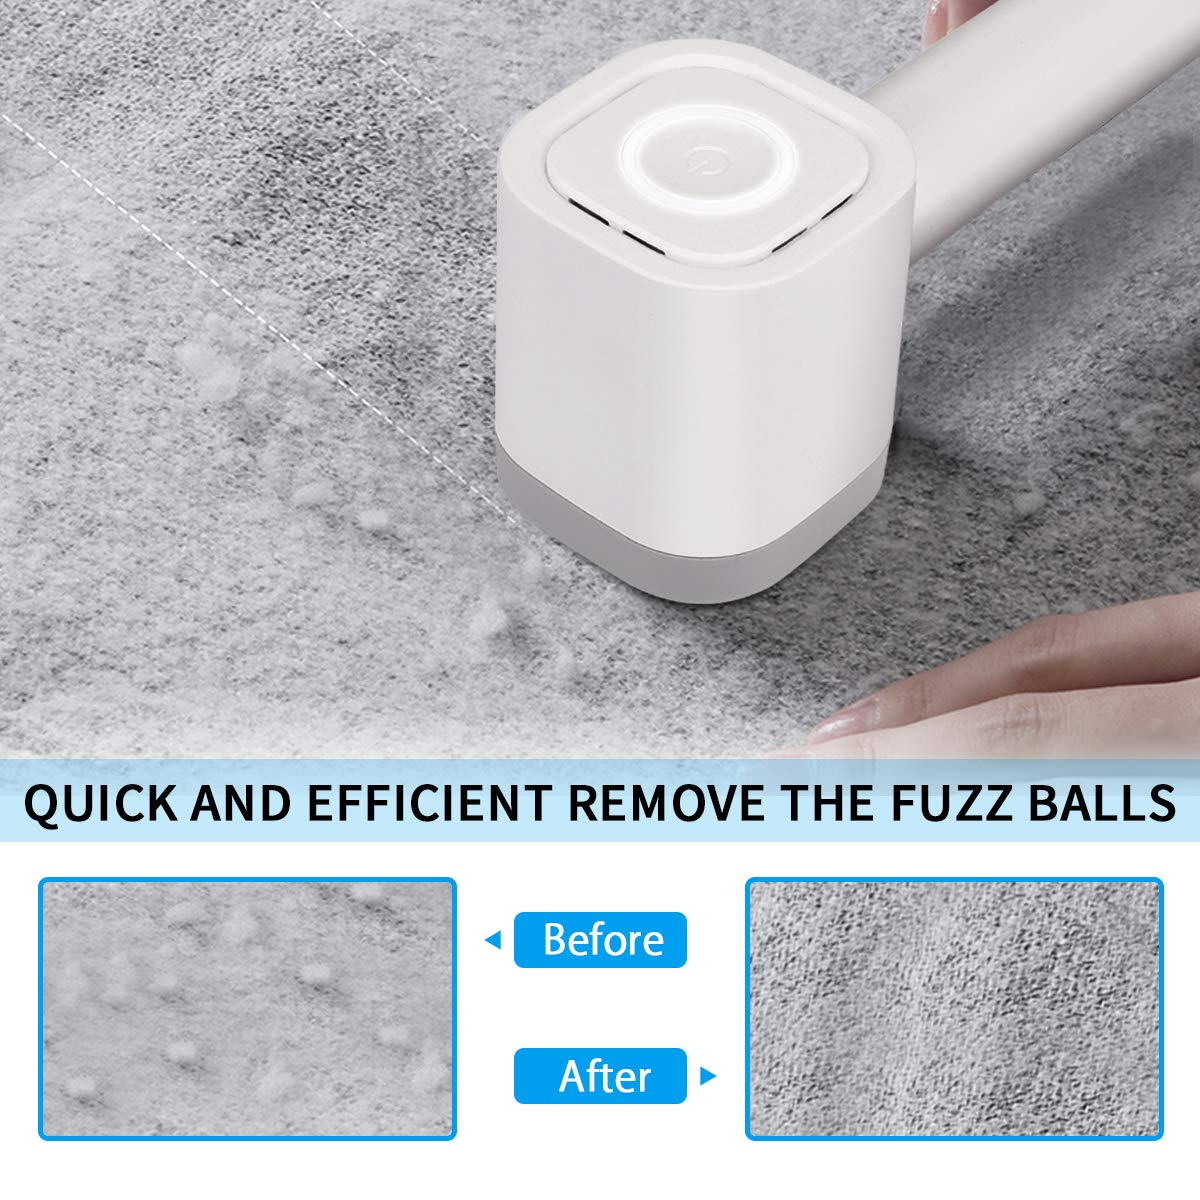 Fabric Shaver, Electric Lint Remover with Sticky Hair Ball & USB Charging Cord Removeable,Dual Protection for Clothes,Quickly and Effectively Remove Bobbles,Fluff,Fuzz,Balls (White)